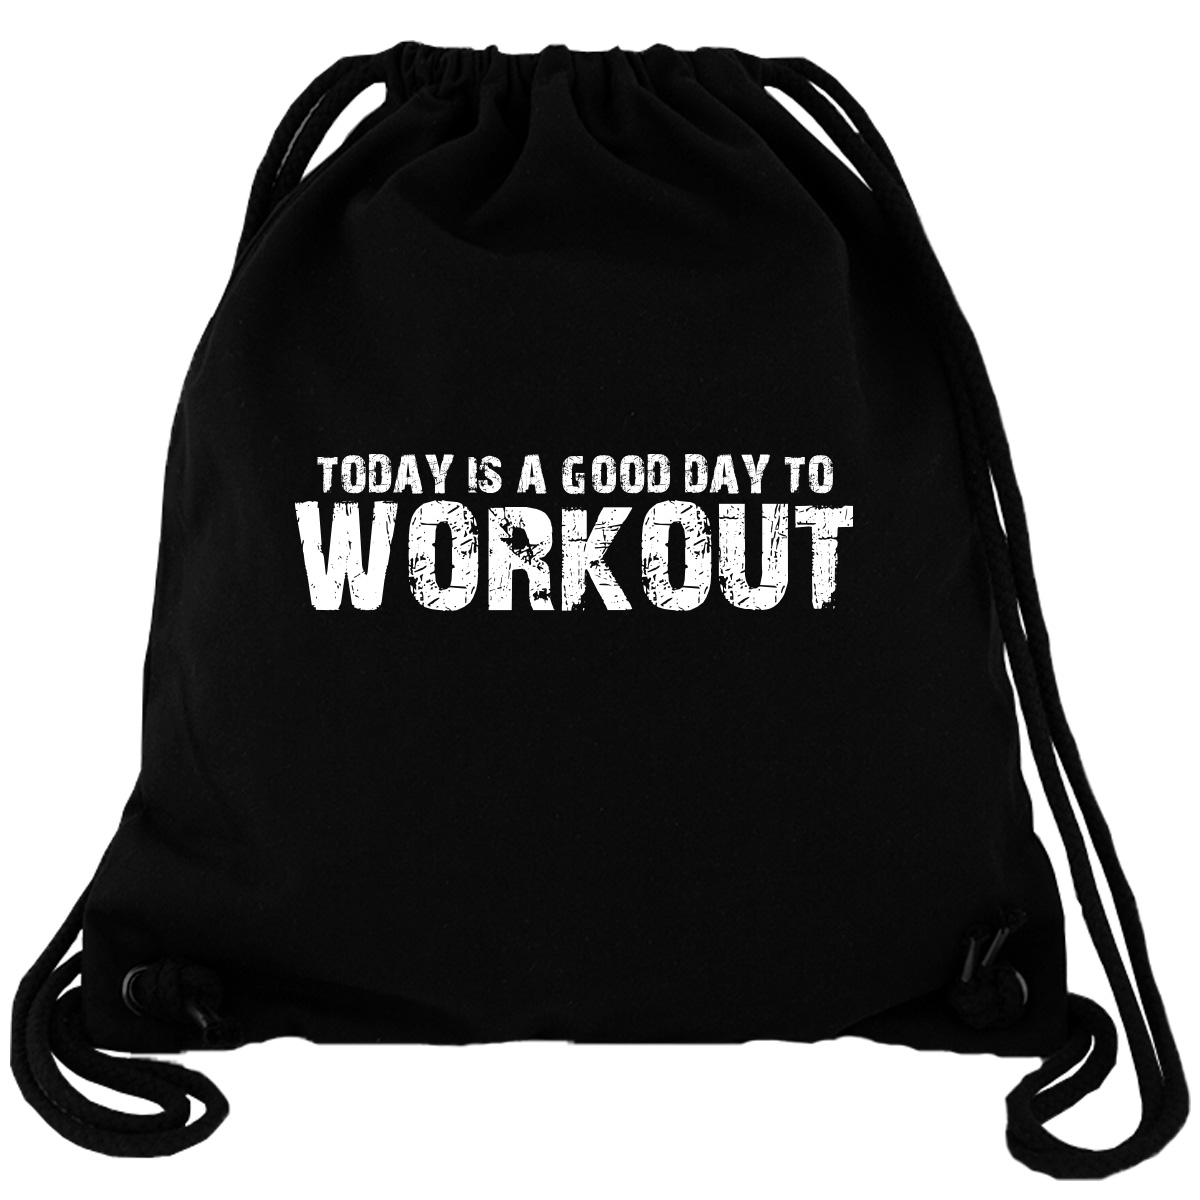 Today Is A Good Day To Workout - Gym Bag Turnbeutel